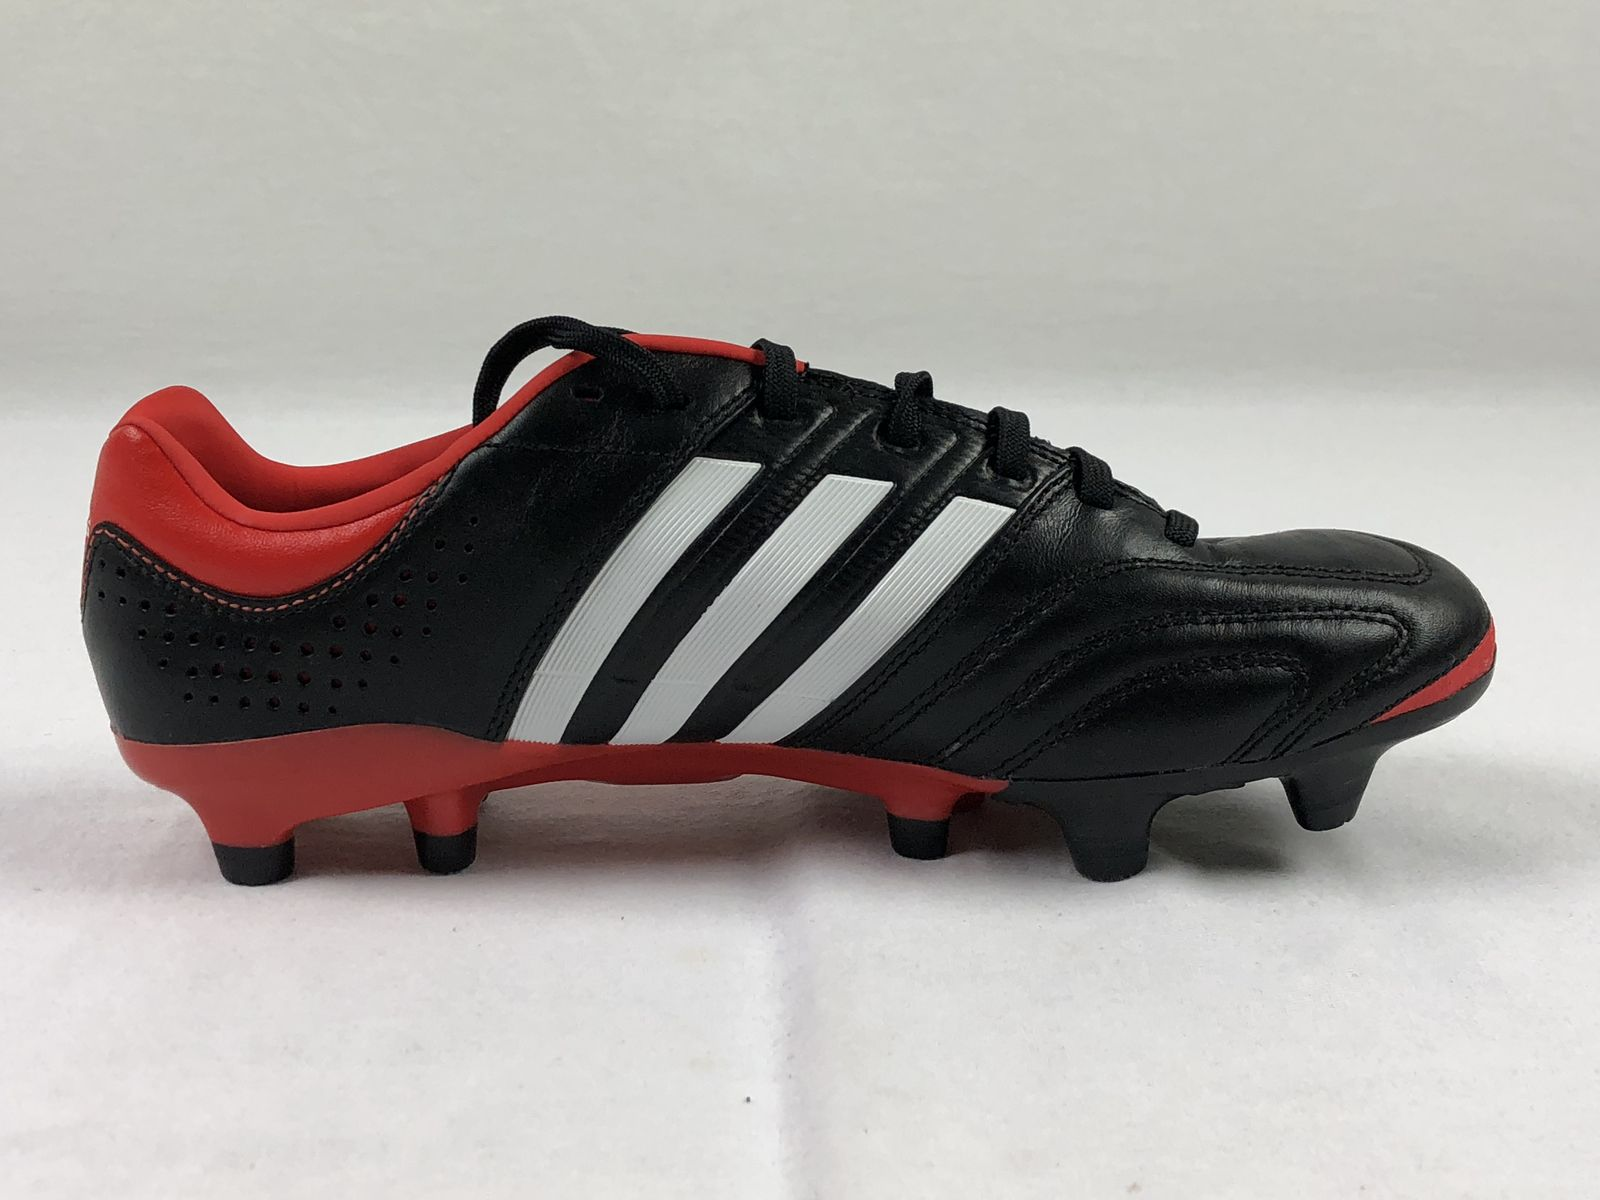 separation shoes d257e f46f5 Details about NEW adidas adipure II Pro TRX - Black Red Cleats (Men s  Multiple Sizes)